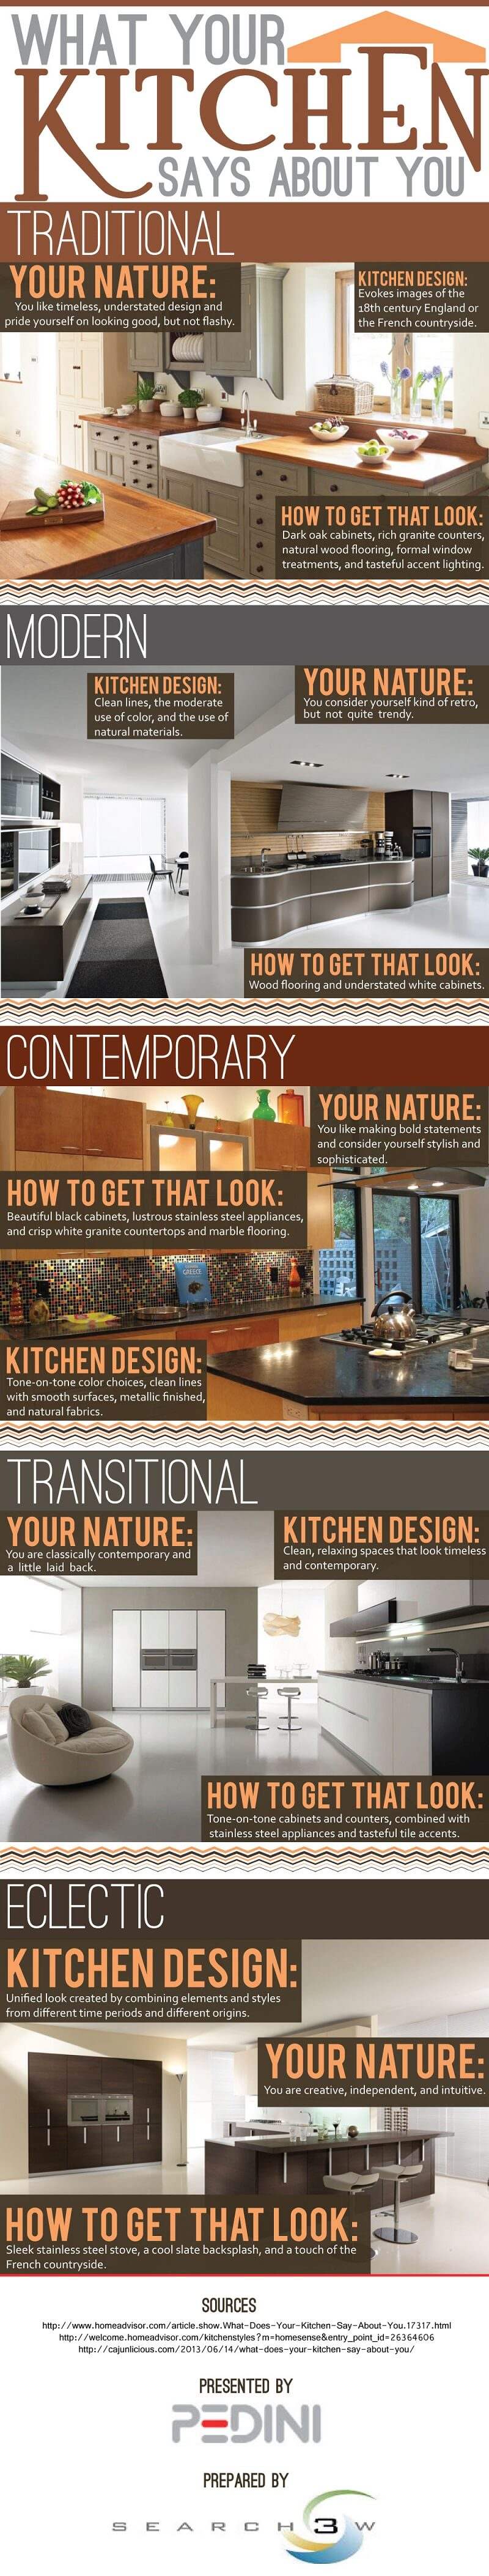 What-Your-Kitchen-Says-About-You-Infographic